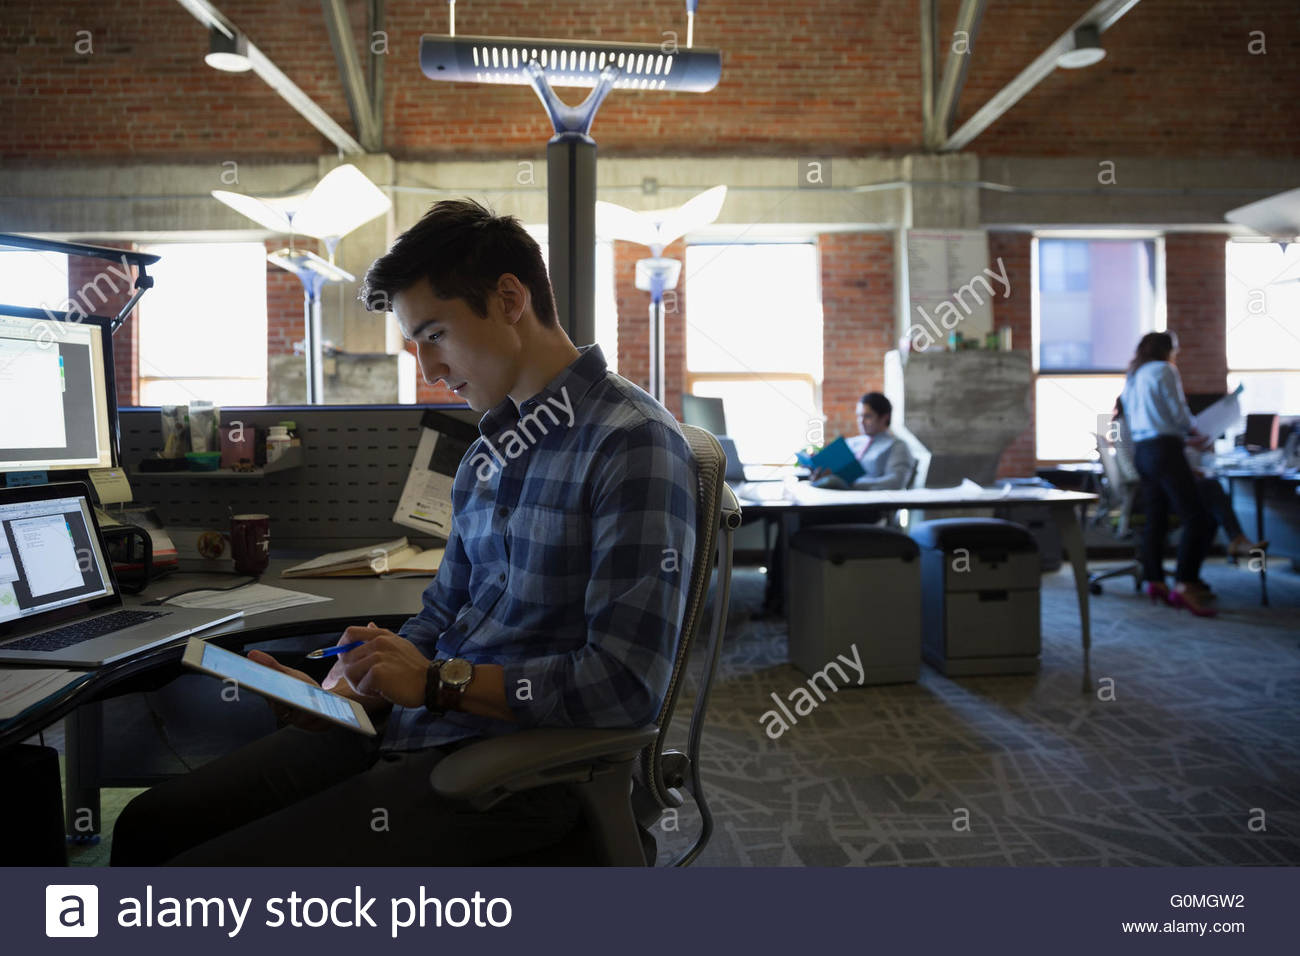 Businessman using digital tablet at desk in office Photo Stock